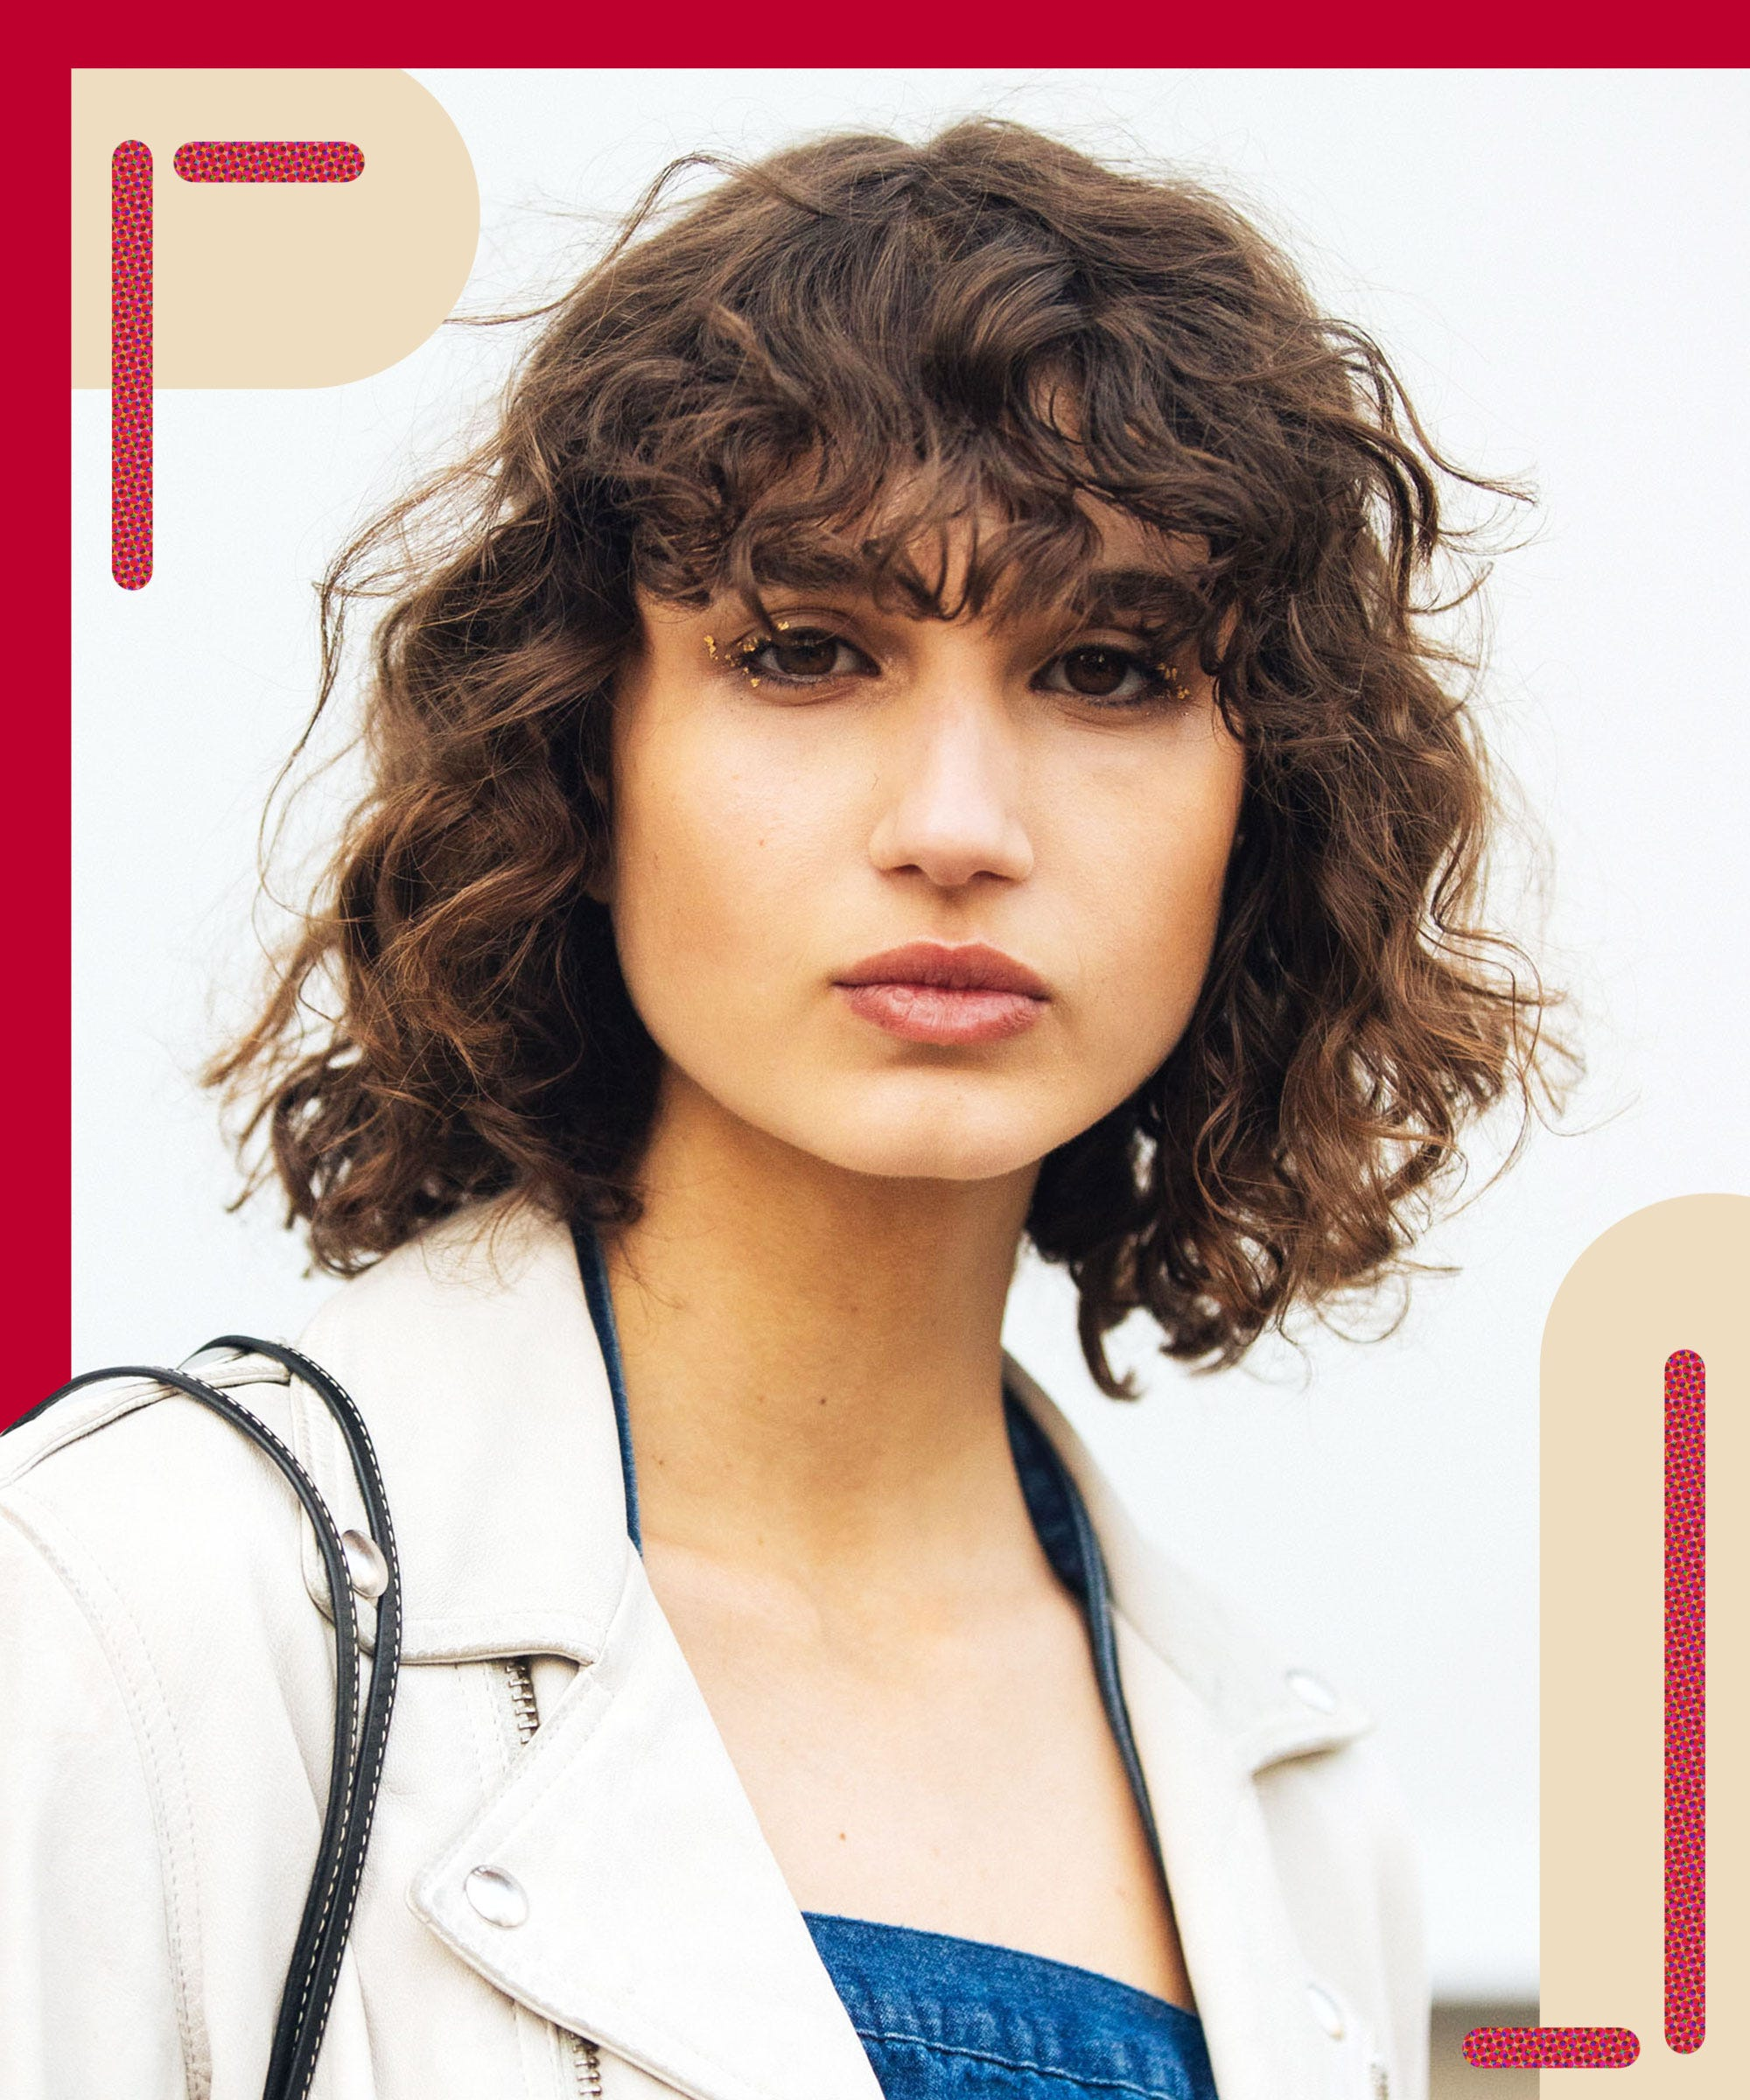 Winter Hair Trends: Hairstyles & Haircuts Huge In NYC